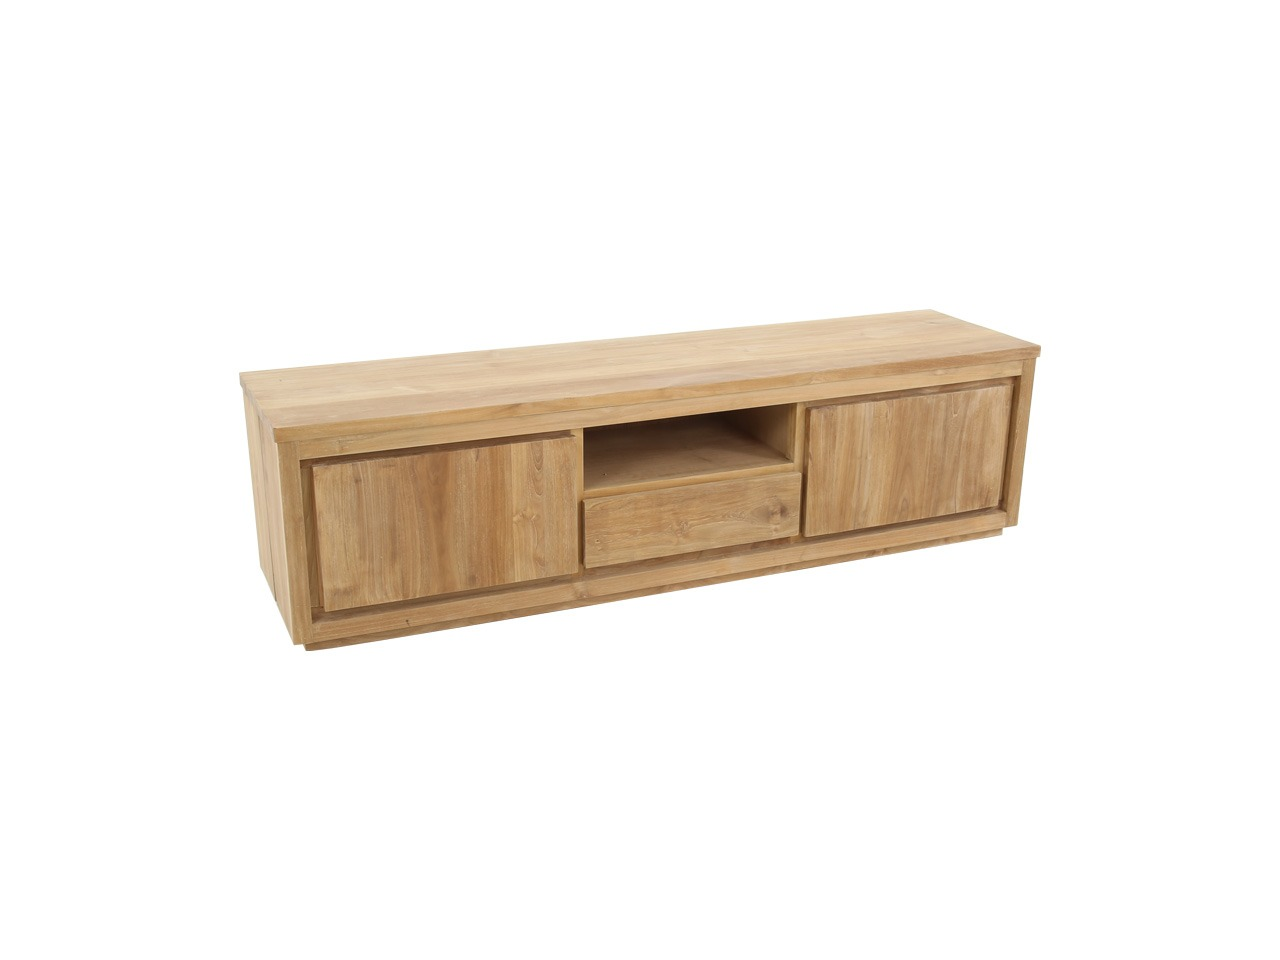 Tv Meubel Aanbieding.Singara Tv Meubel Small Teak Deco